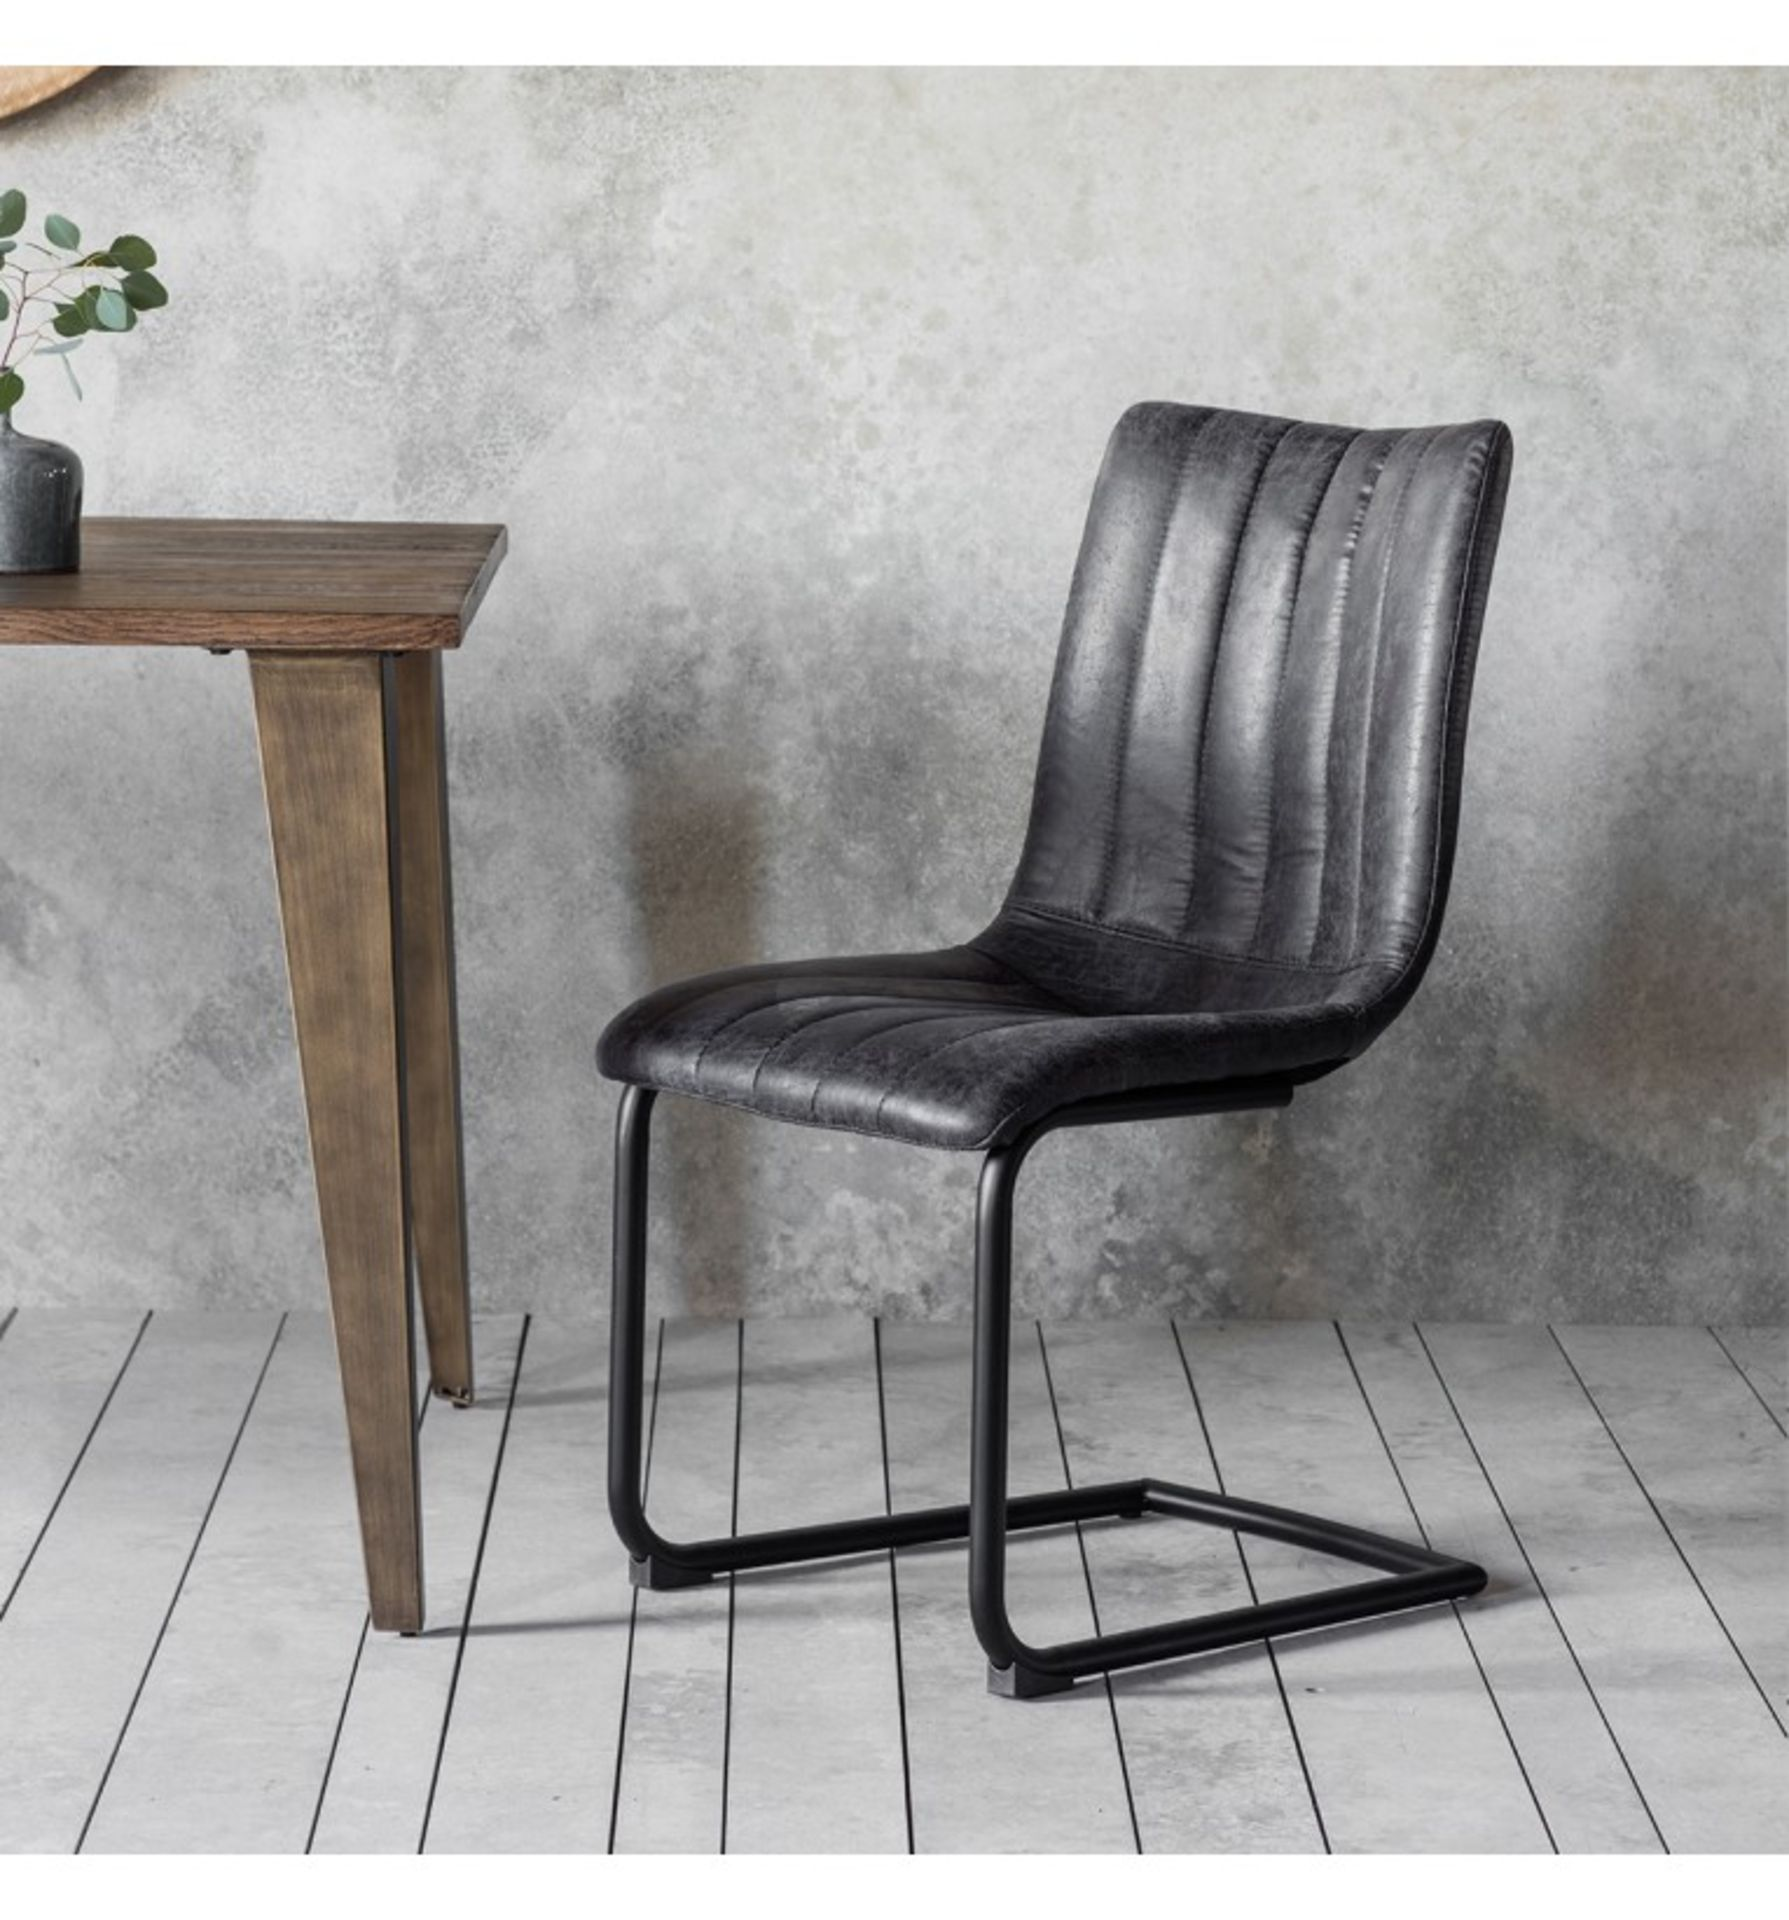 Edington Brown Chair (2pk) A Retro Classic Styled Dining Chair With Decorative Stitching Detail - Image 2 of 2